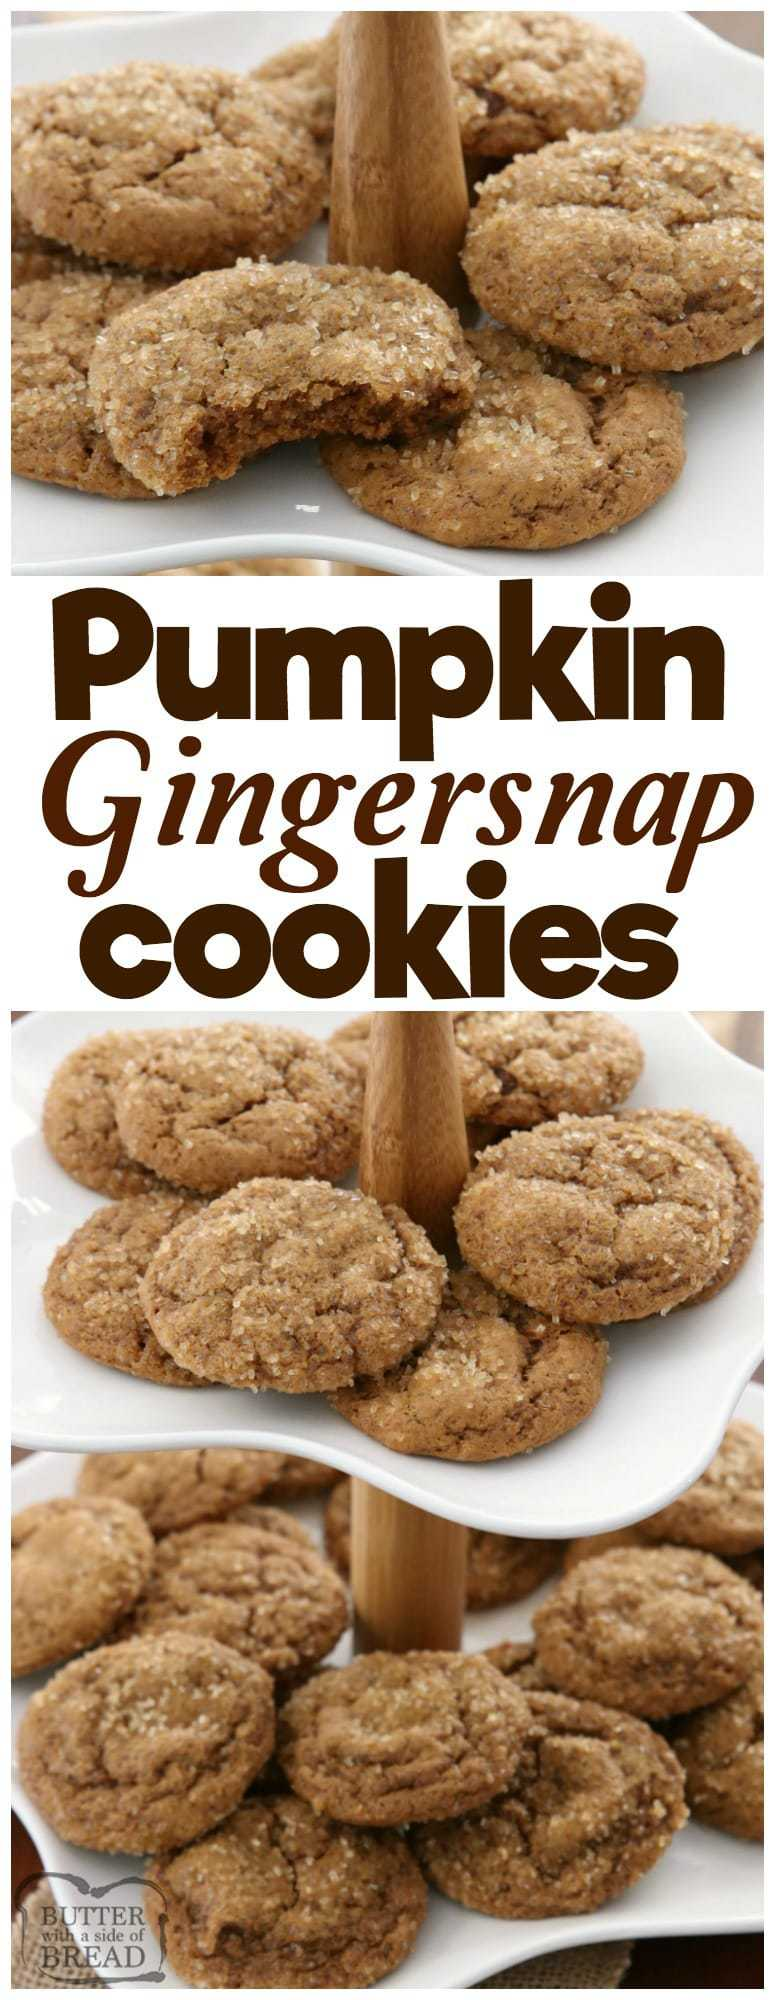 Soft Pumpkin Gingersnap Cookies are soft, perfectly spiced gingersnap cookies made with pumpkin! Classic cookie recipe with a twist perfect for holiday baking.